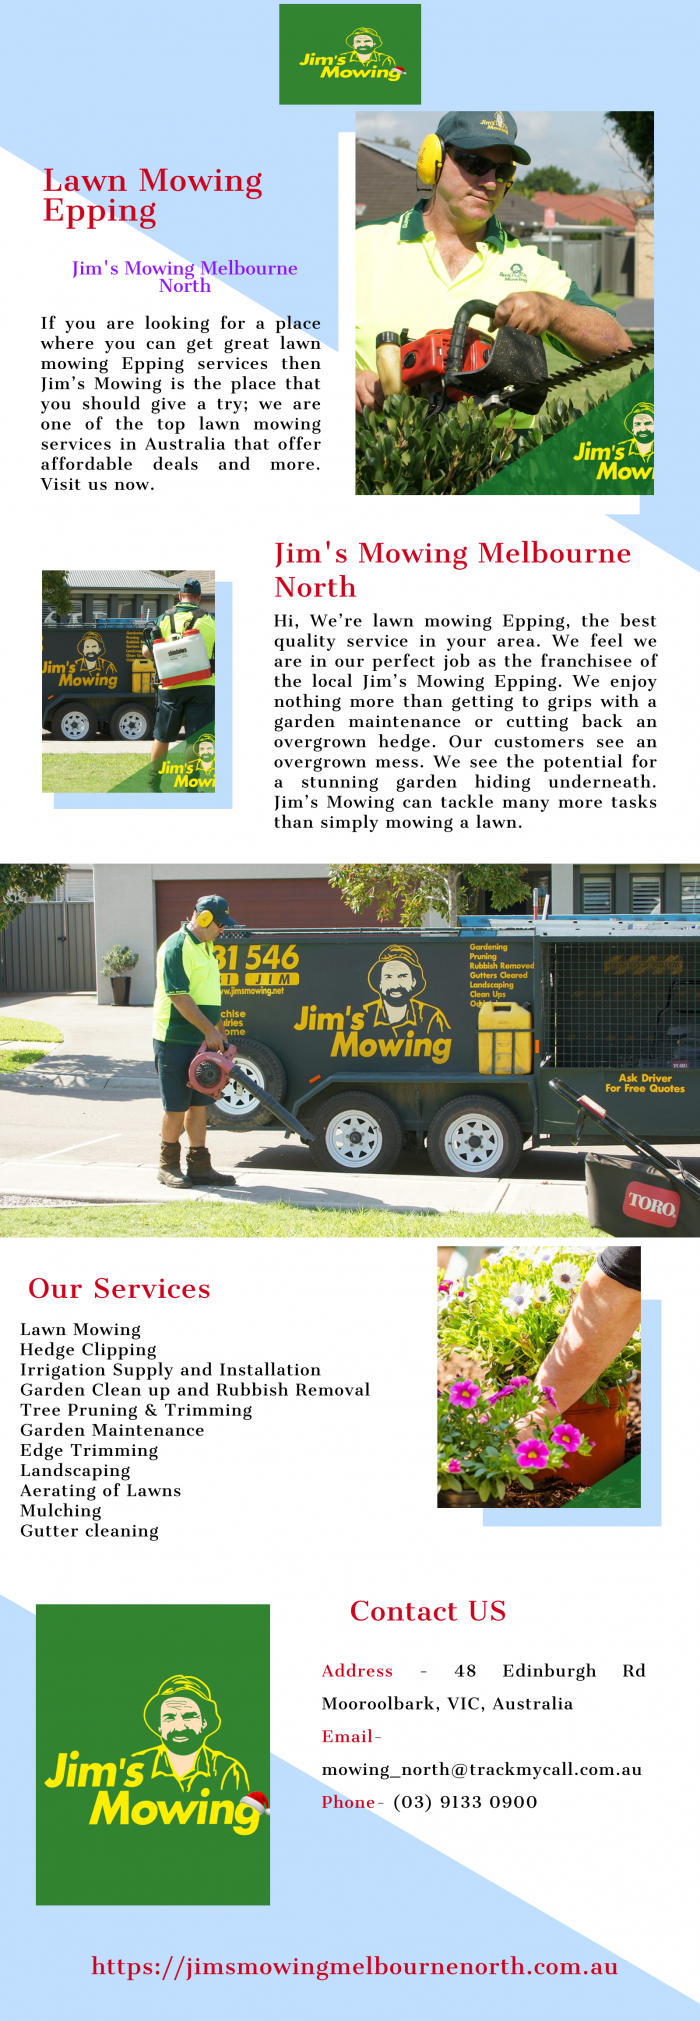 Looking for Best Lawn Mowing Epping Services | Jim's Mowing Melbourne North